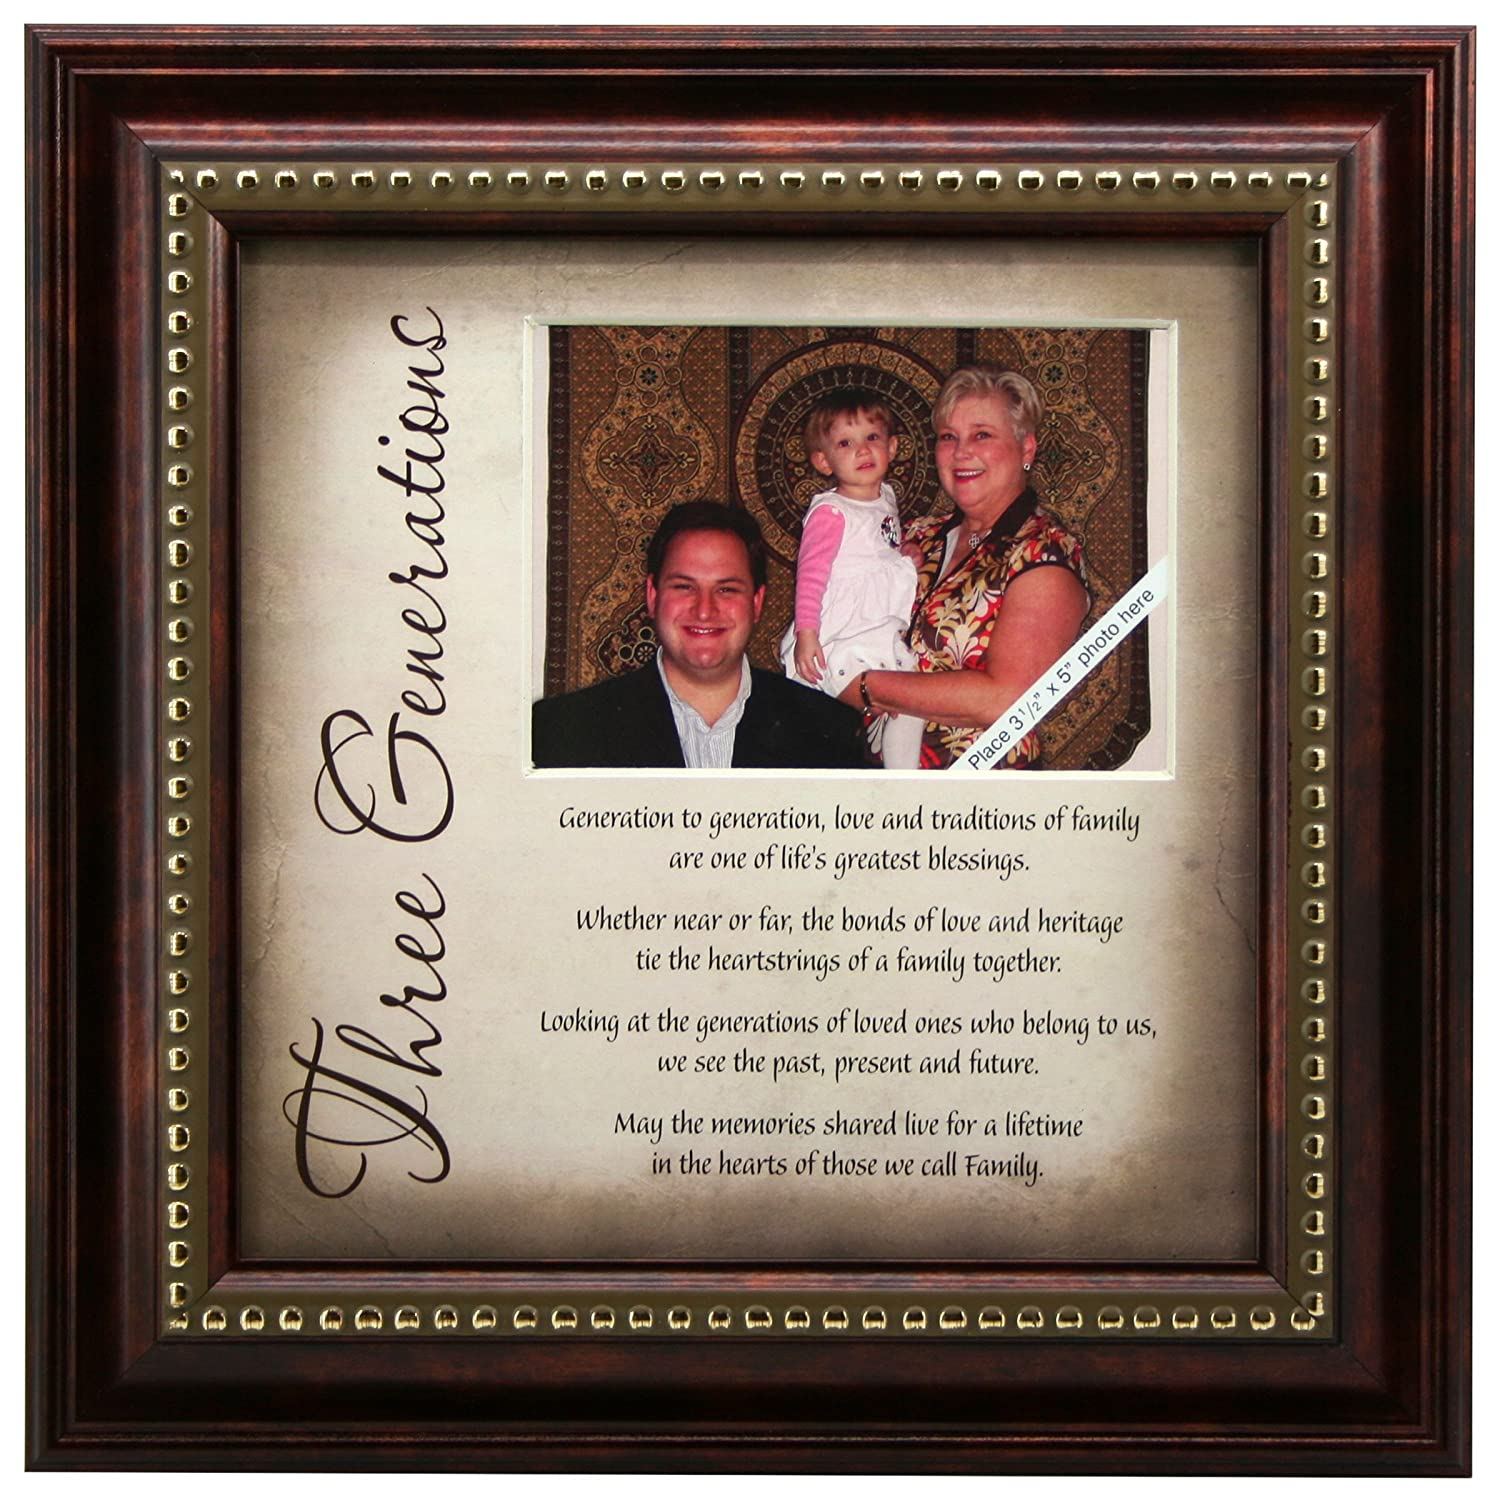 3 Generations Frame and Poem - Gift for Grandparents: Amazon.co.uk ...